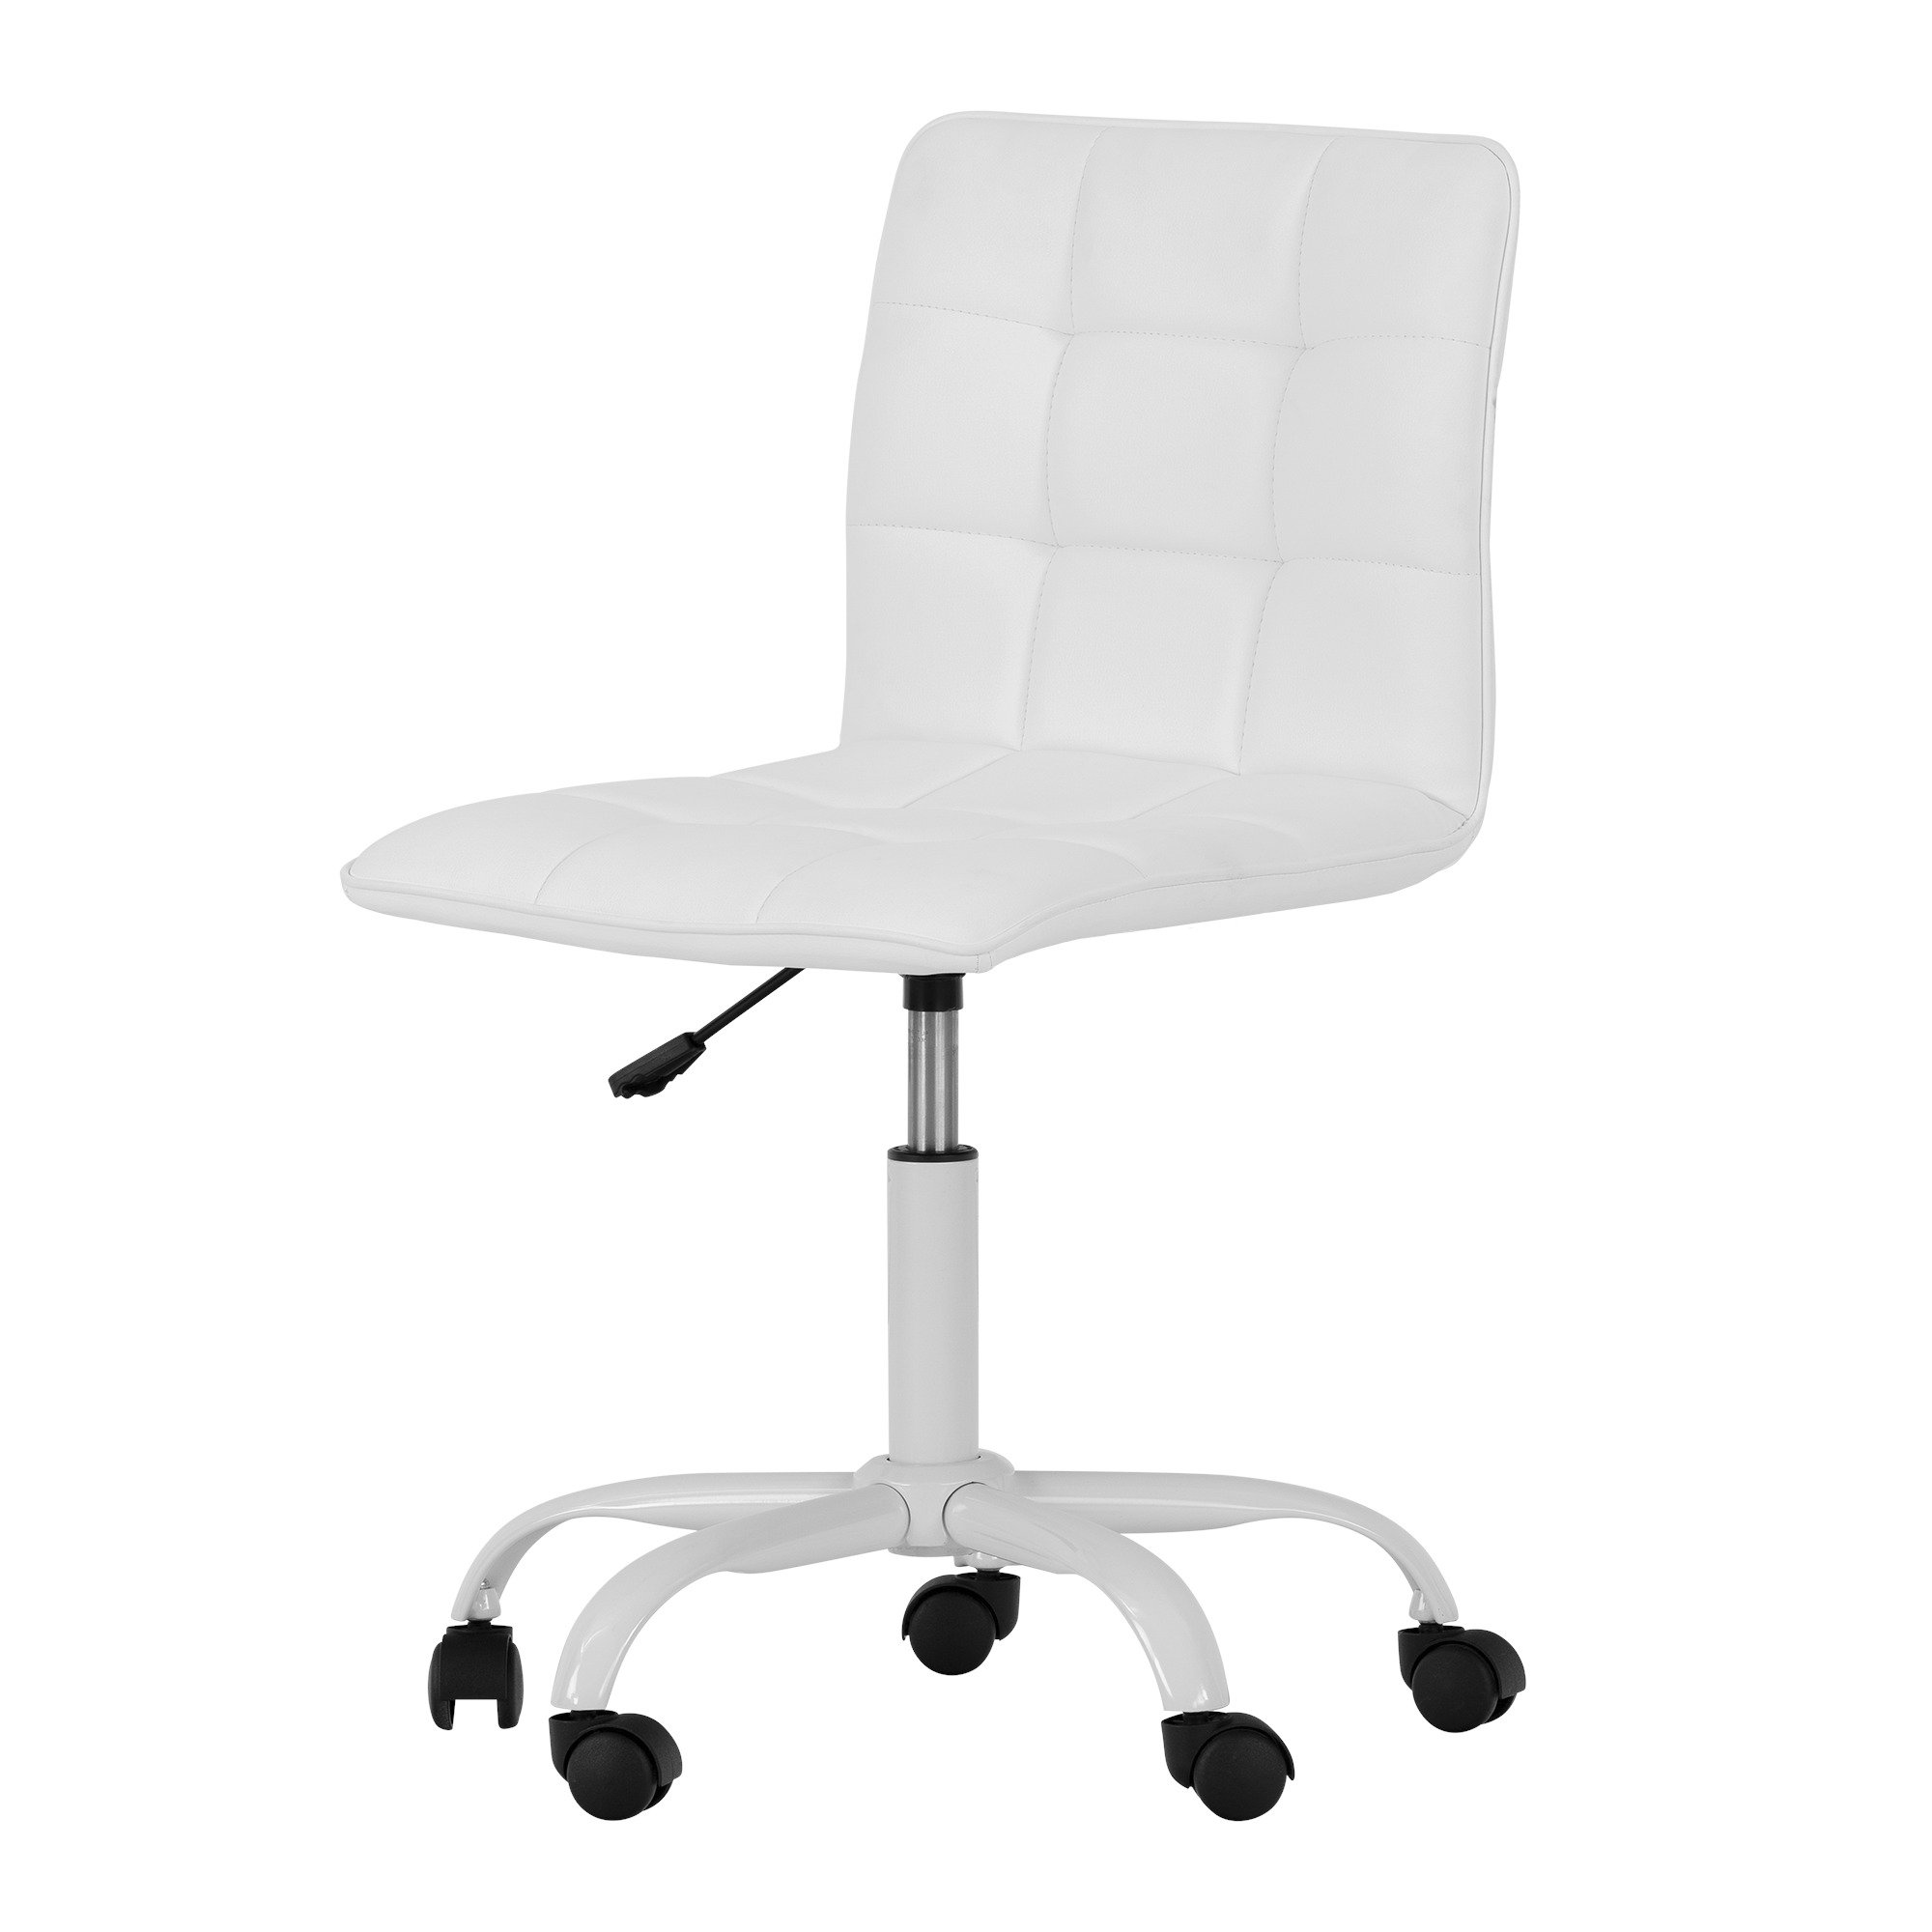 Annexe White Office Chair with Quilted Seat - Ergonomic Executive Office Chair - Mid Back Chair for Home Office by South Shore